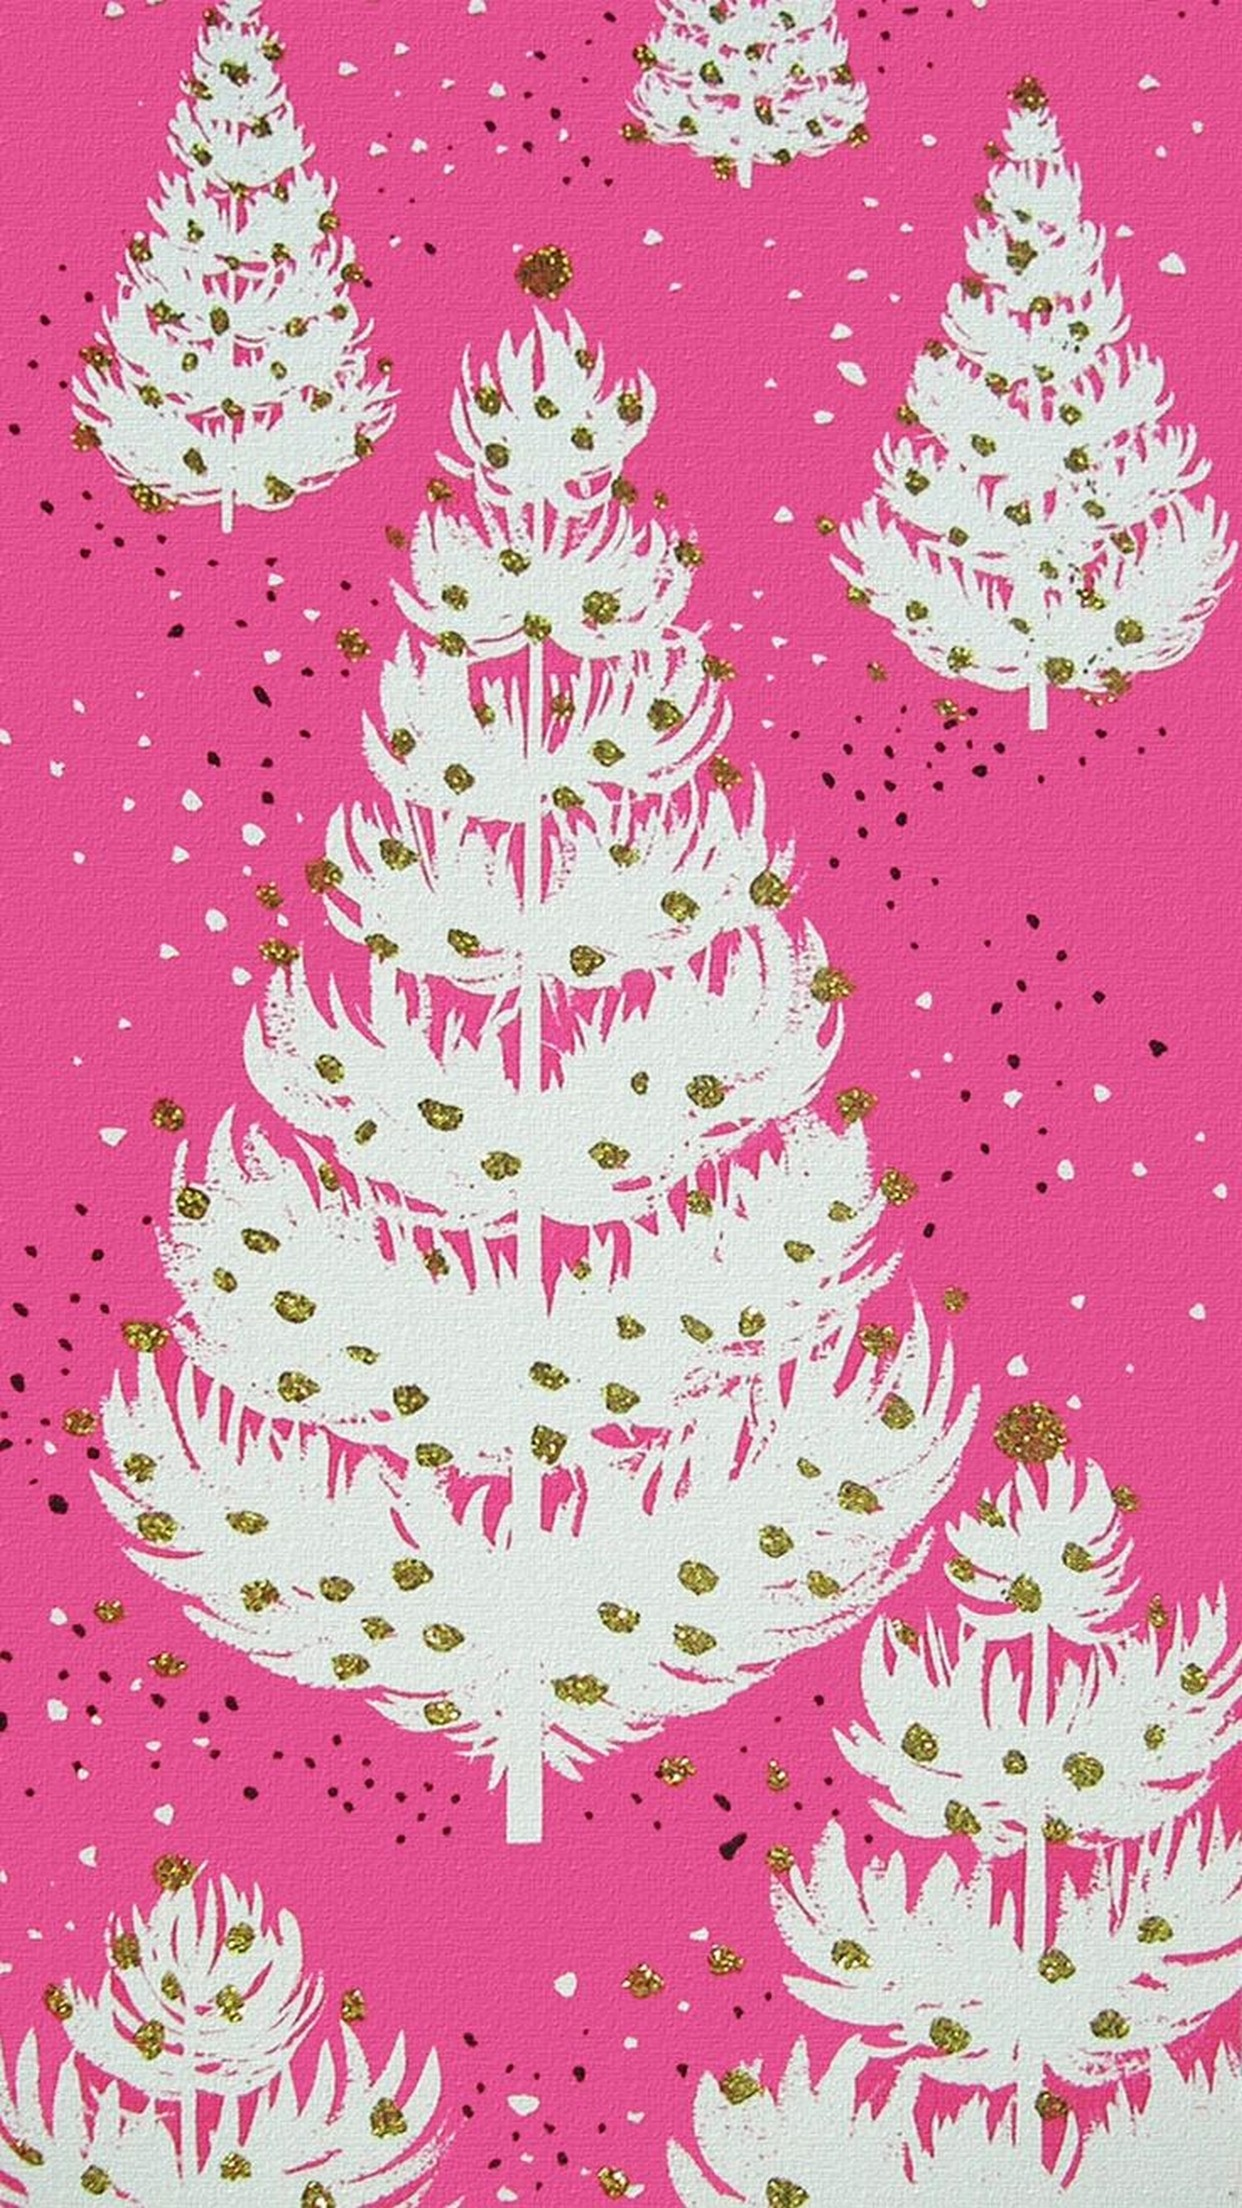 Cute Girly Skull Wallpapers Pink Christmas Wallpaper 61 Images